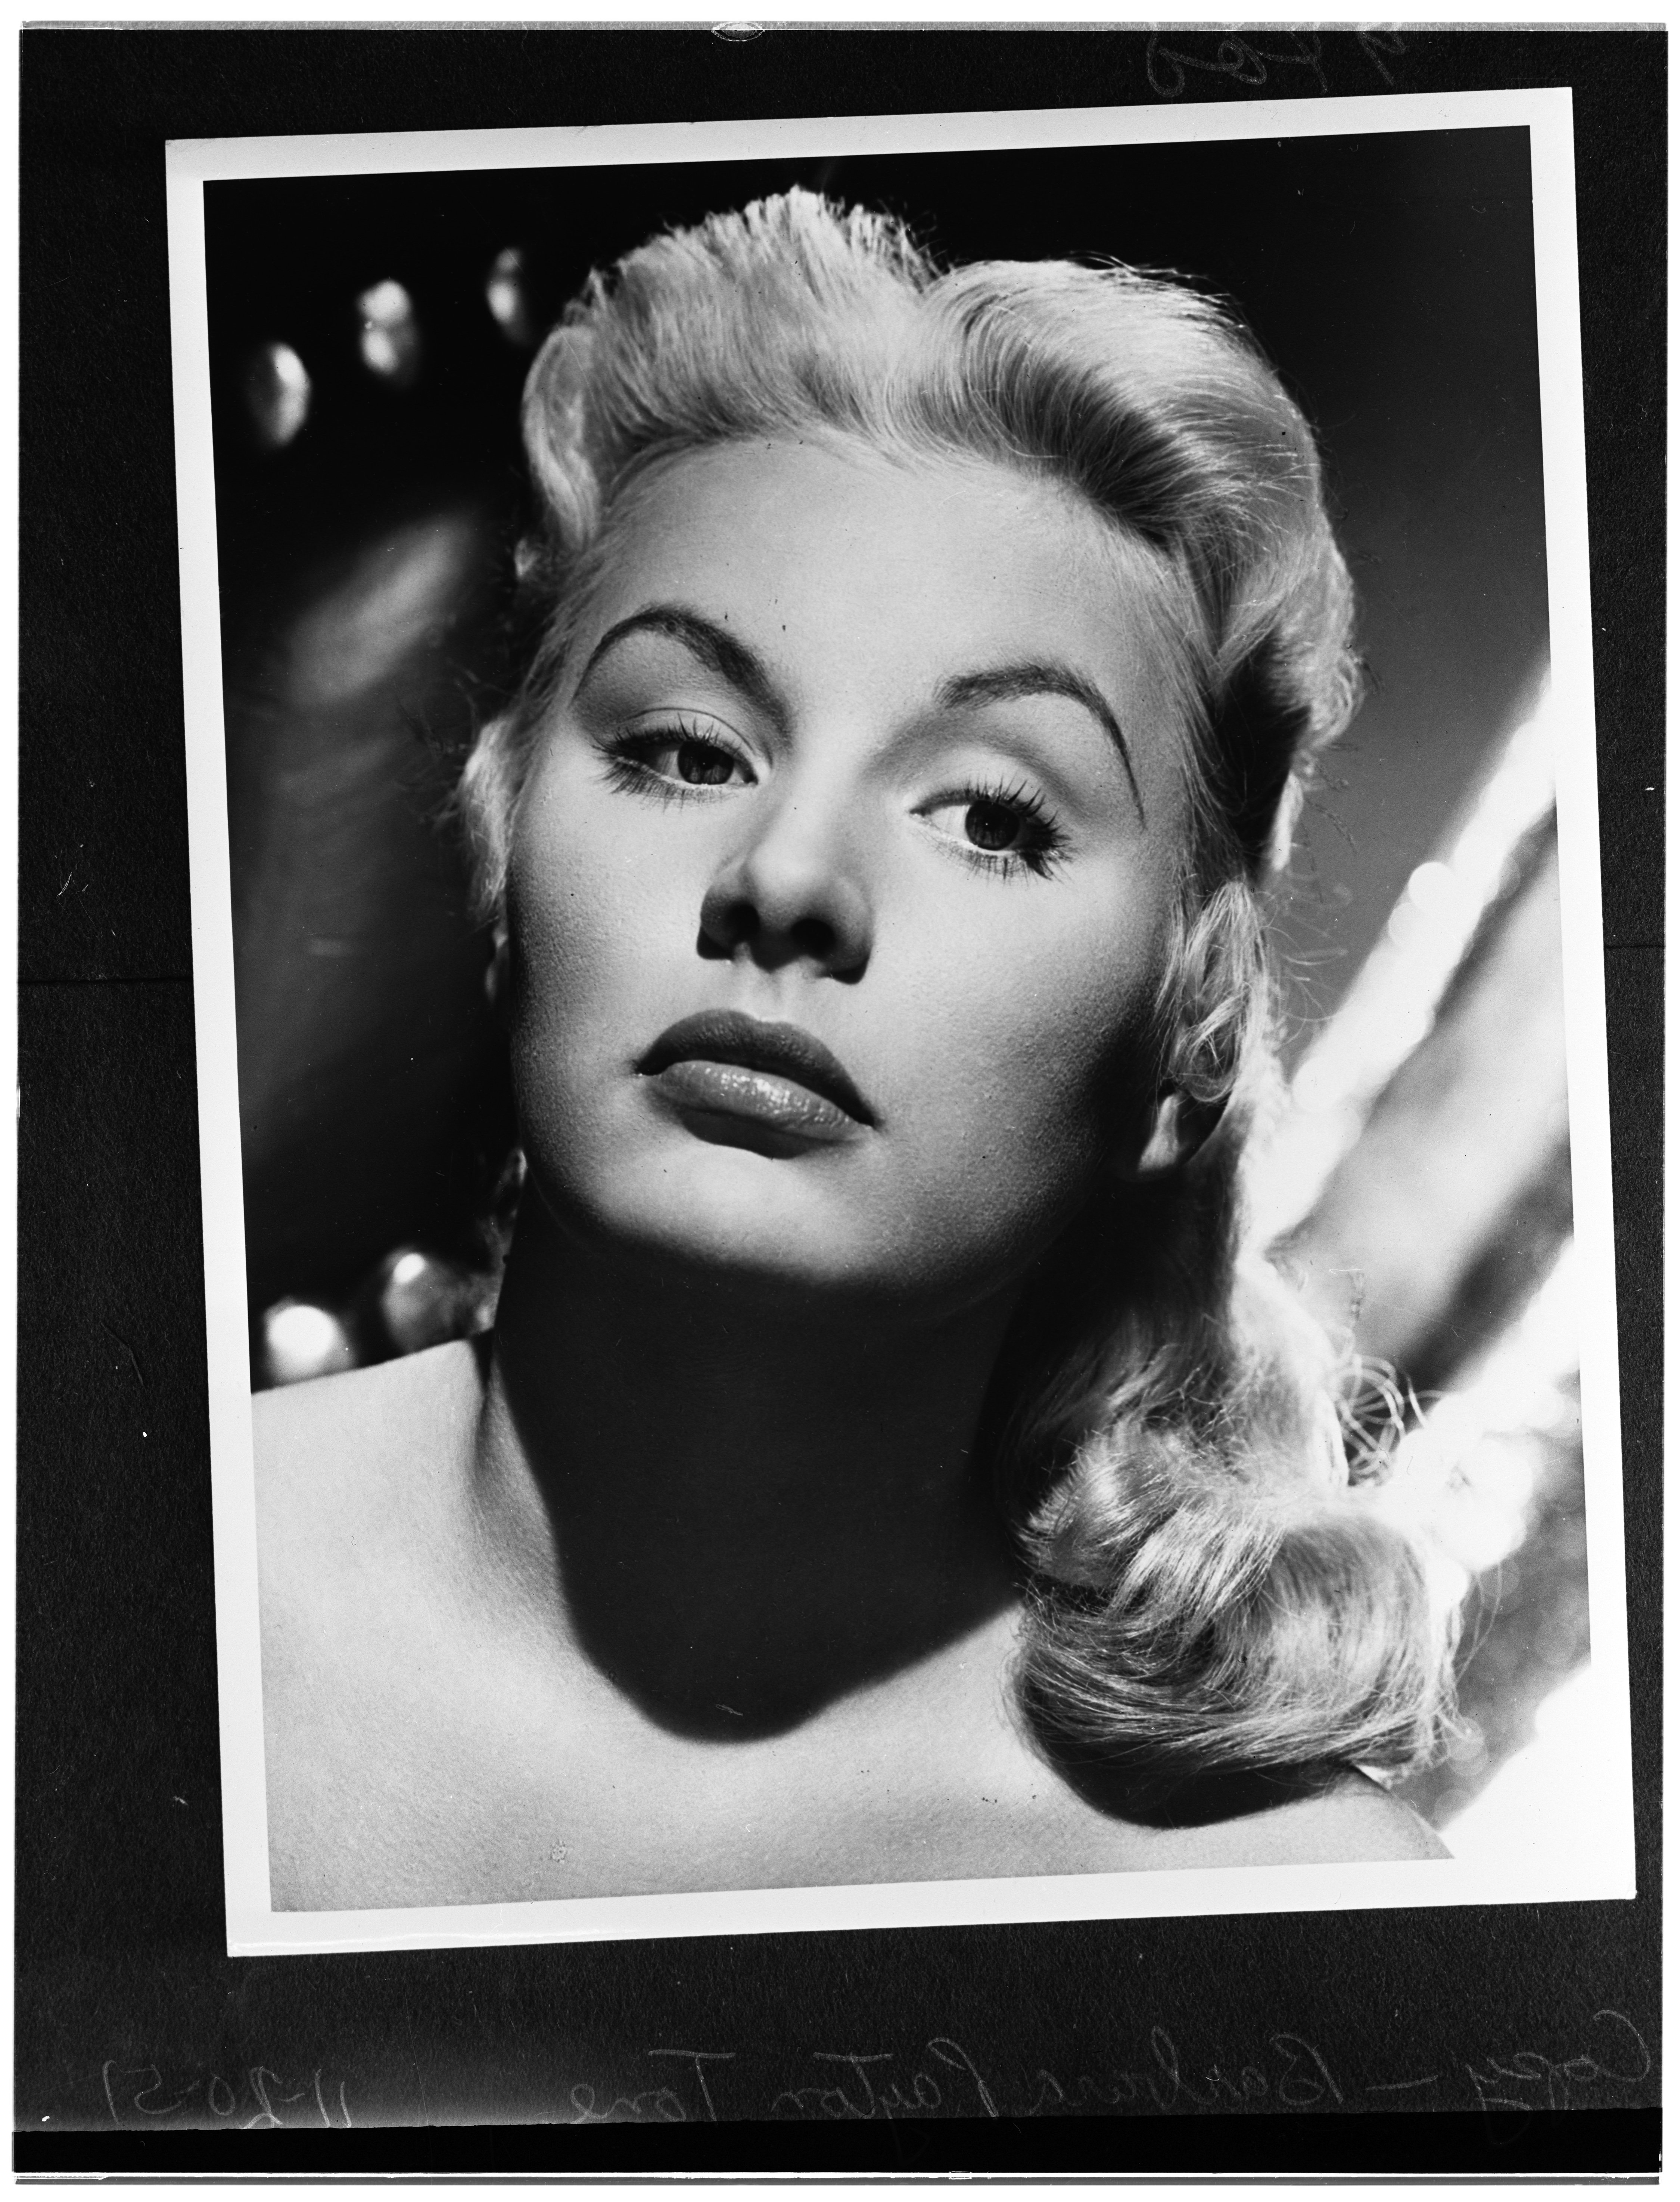 Copy negatives of Barbara Payton in 1951, Los Angeles | Photo: Getty Images